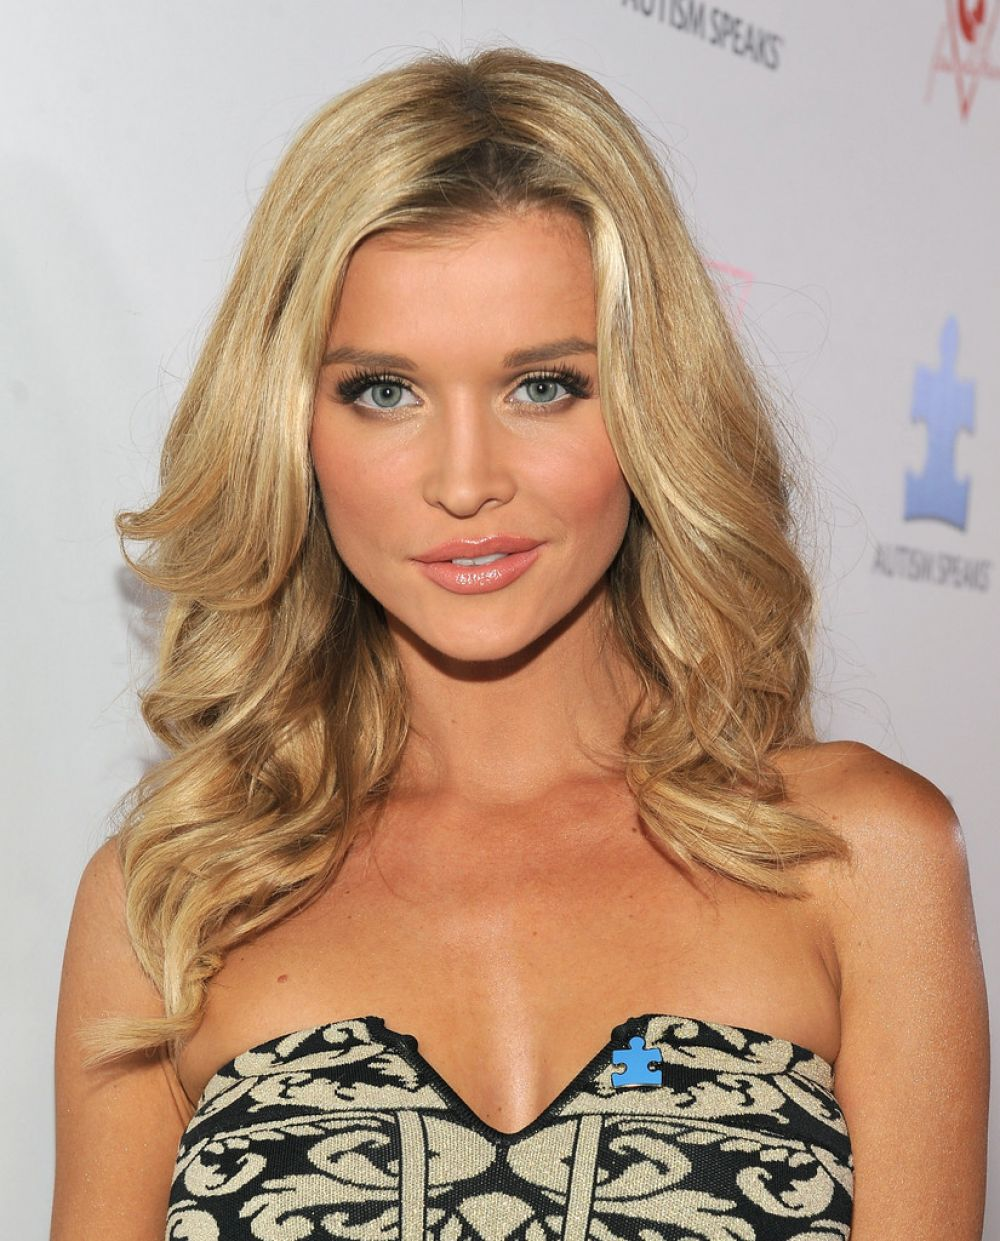 Joanna Krupa graphic